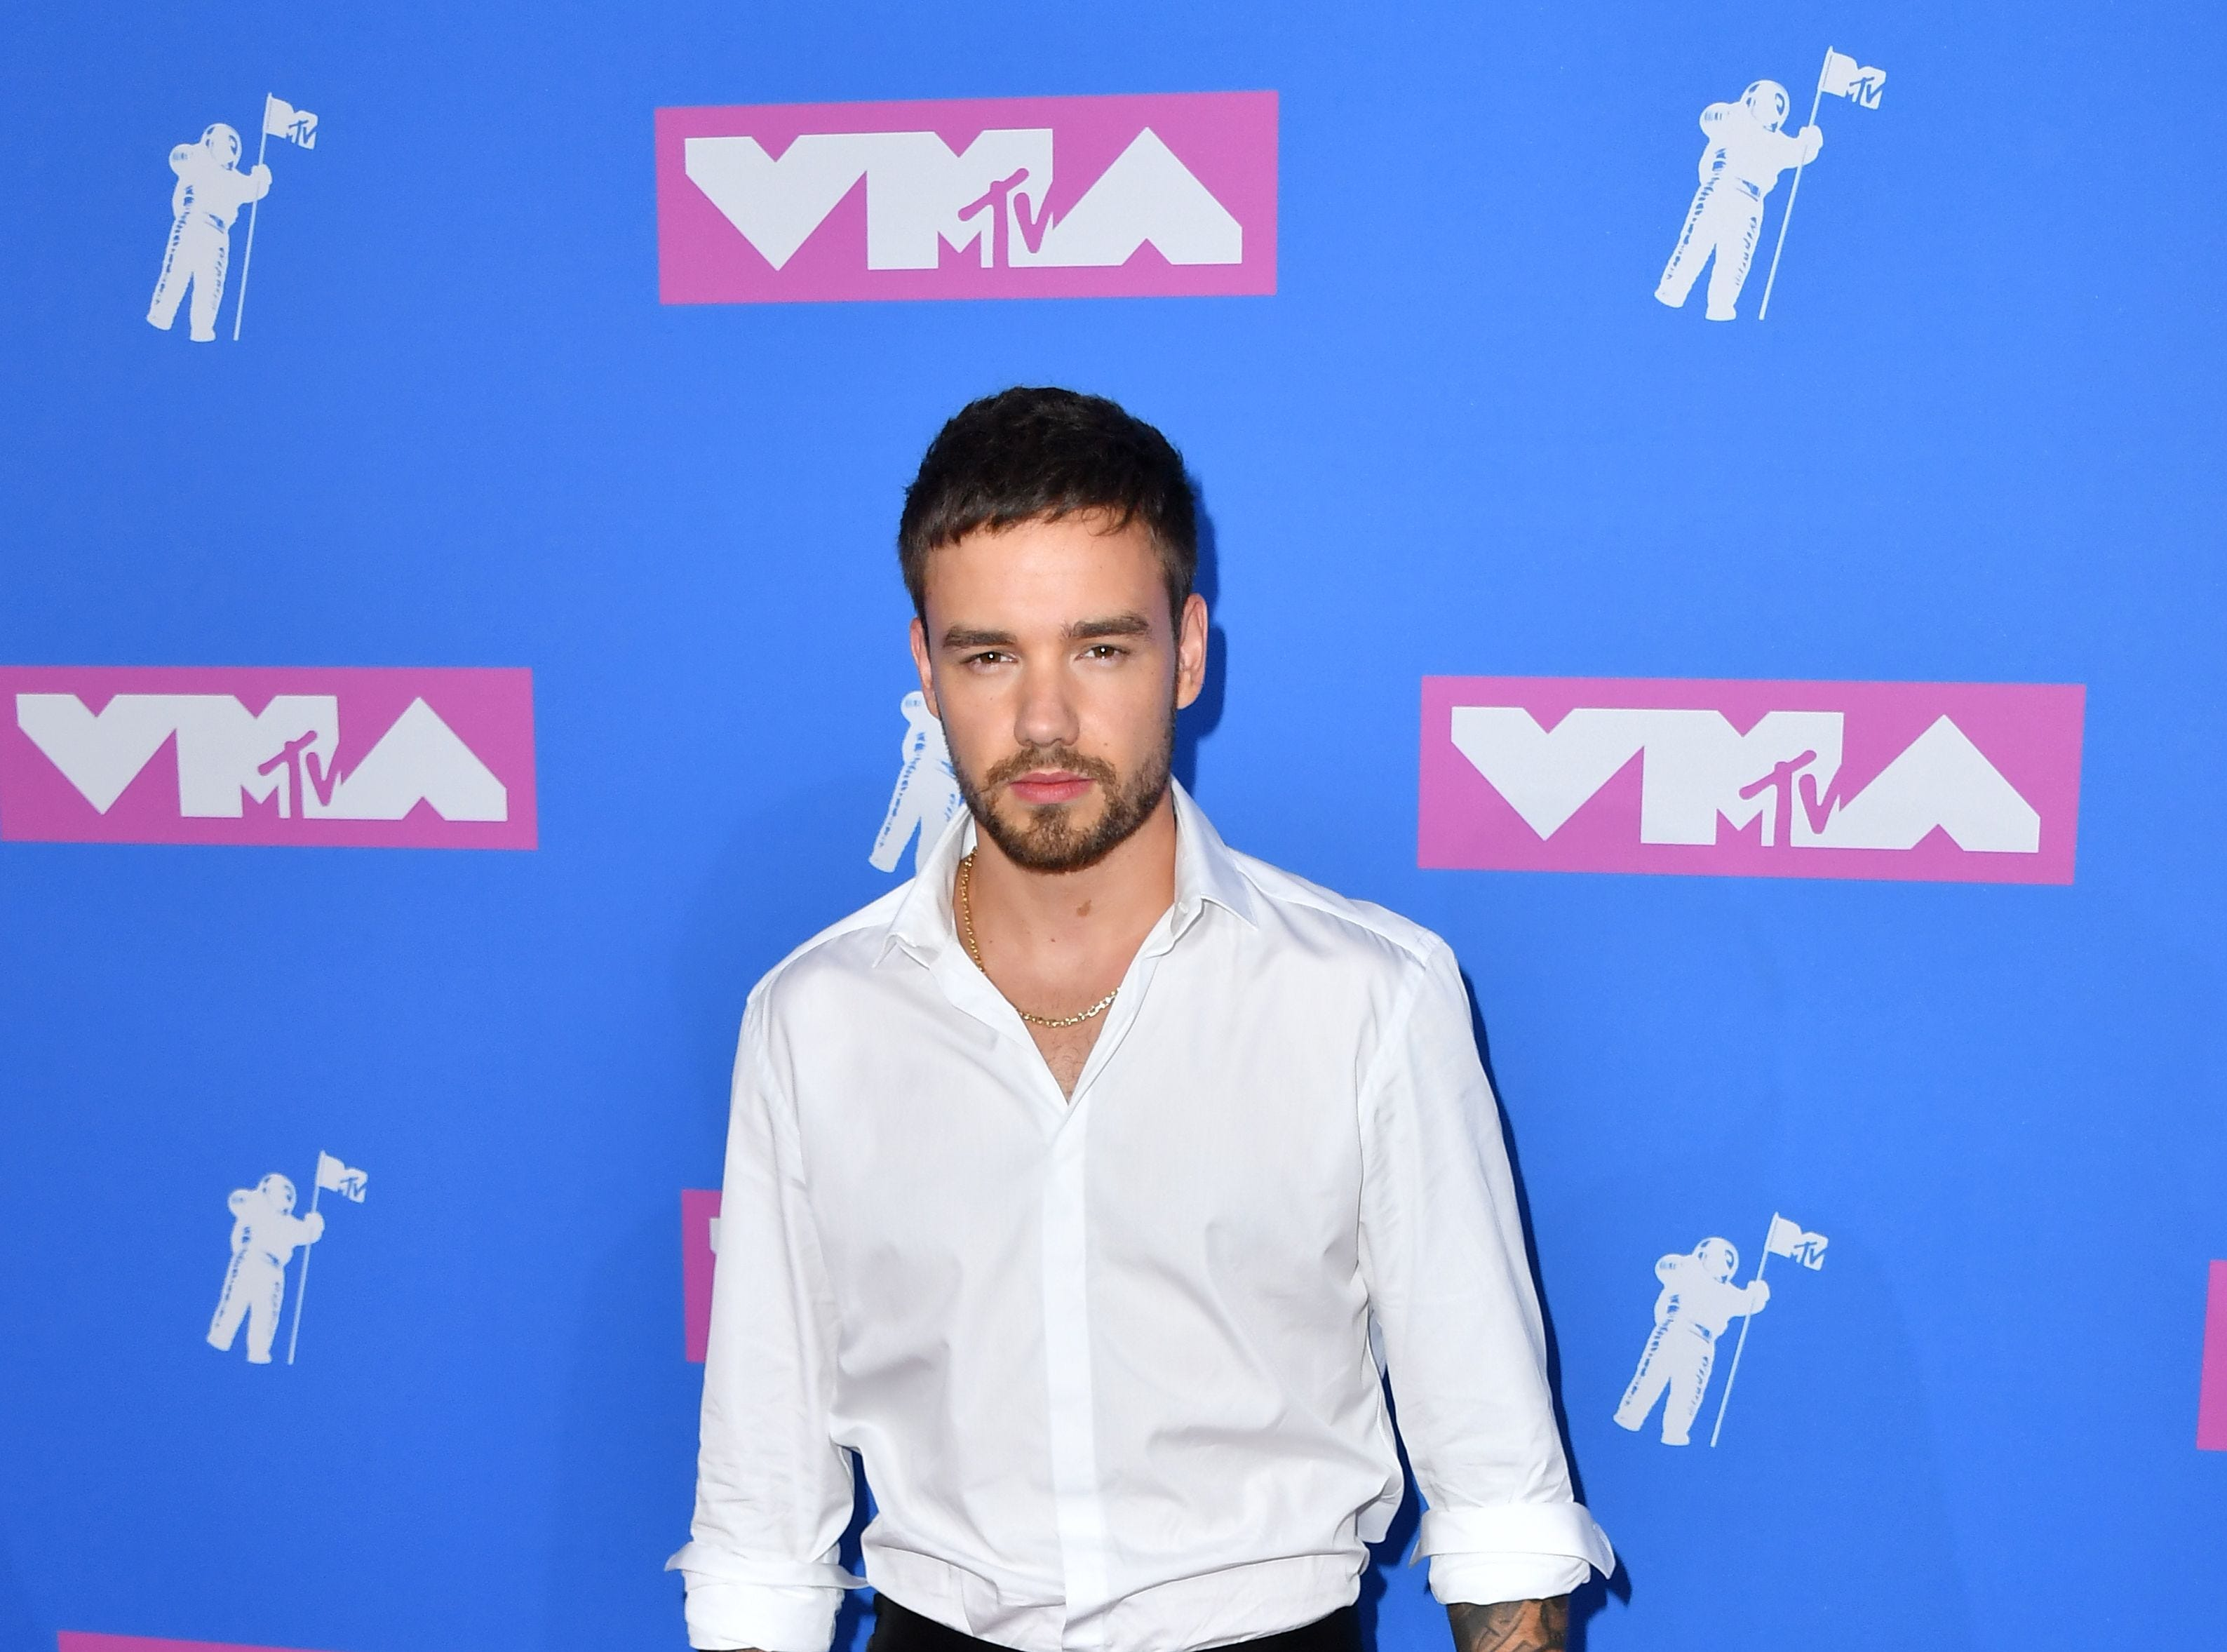 English singer Liam Payne attends the 2018 MTV Video Music Awards at Radio City Music Hall on August 20, 2018 in New York City. (Photo by ANGELA WEISS / AFP)ANGELA WEISS/AFP/Getty Images ORG XMIT: 2018 MTV ORIG FILE ID: AFP_18H8VQ